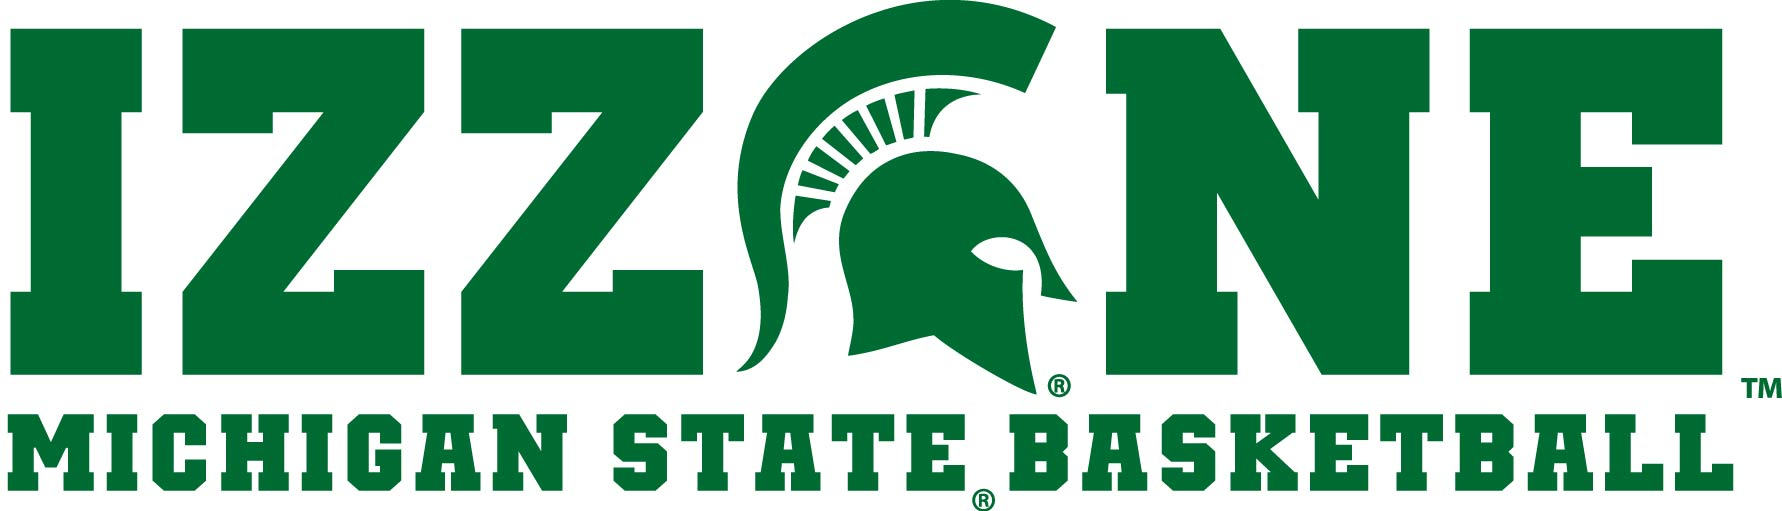 Michigan state university logo clipart clipart freeuse stock 17 Best ideas about Spartan Basketball on Pinterest | Msu spartans ... clipart freeuse stock